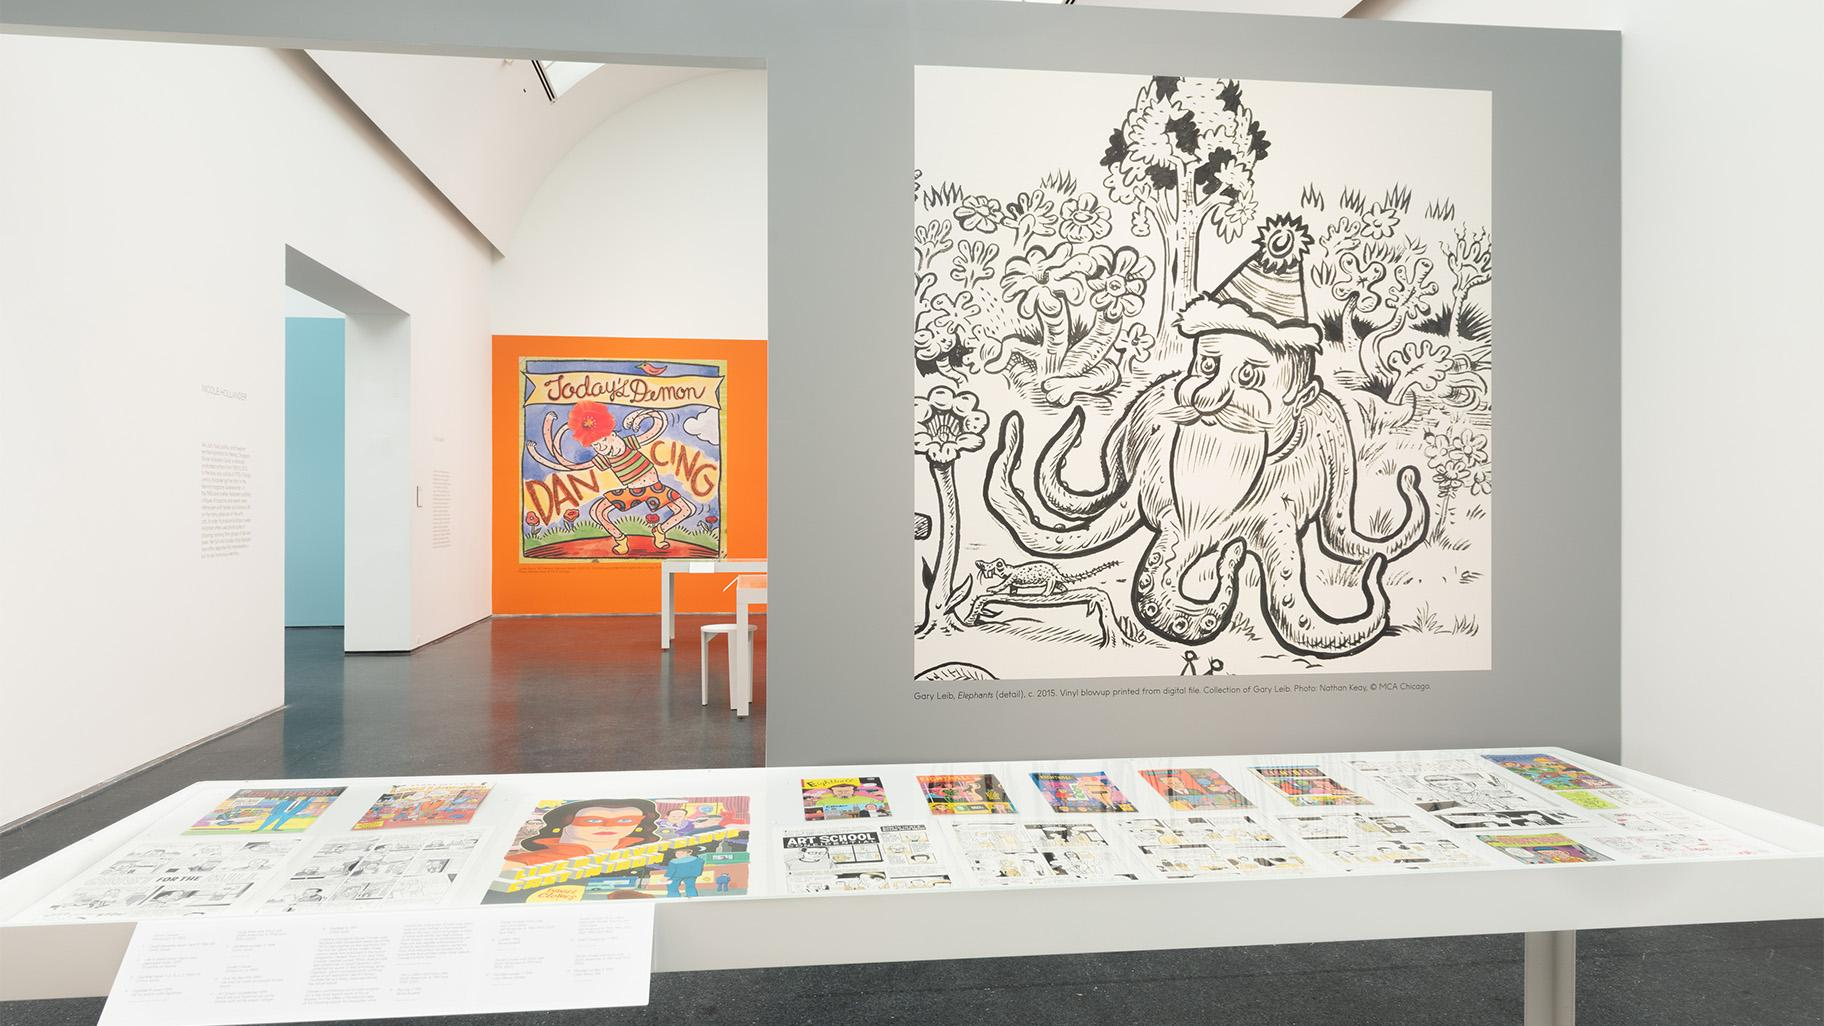 Installation view, Chicago Comics: 1960s to Now is on display from June 19 to October 3, 2021 (Nathan Keay / MCA Chicago)